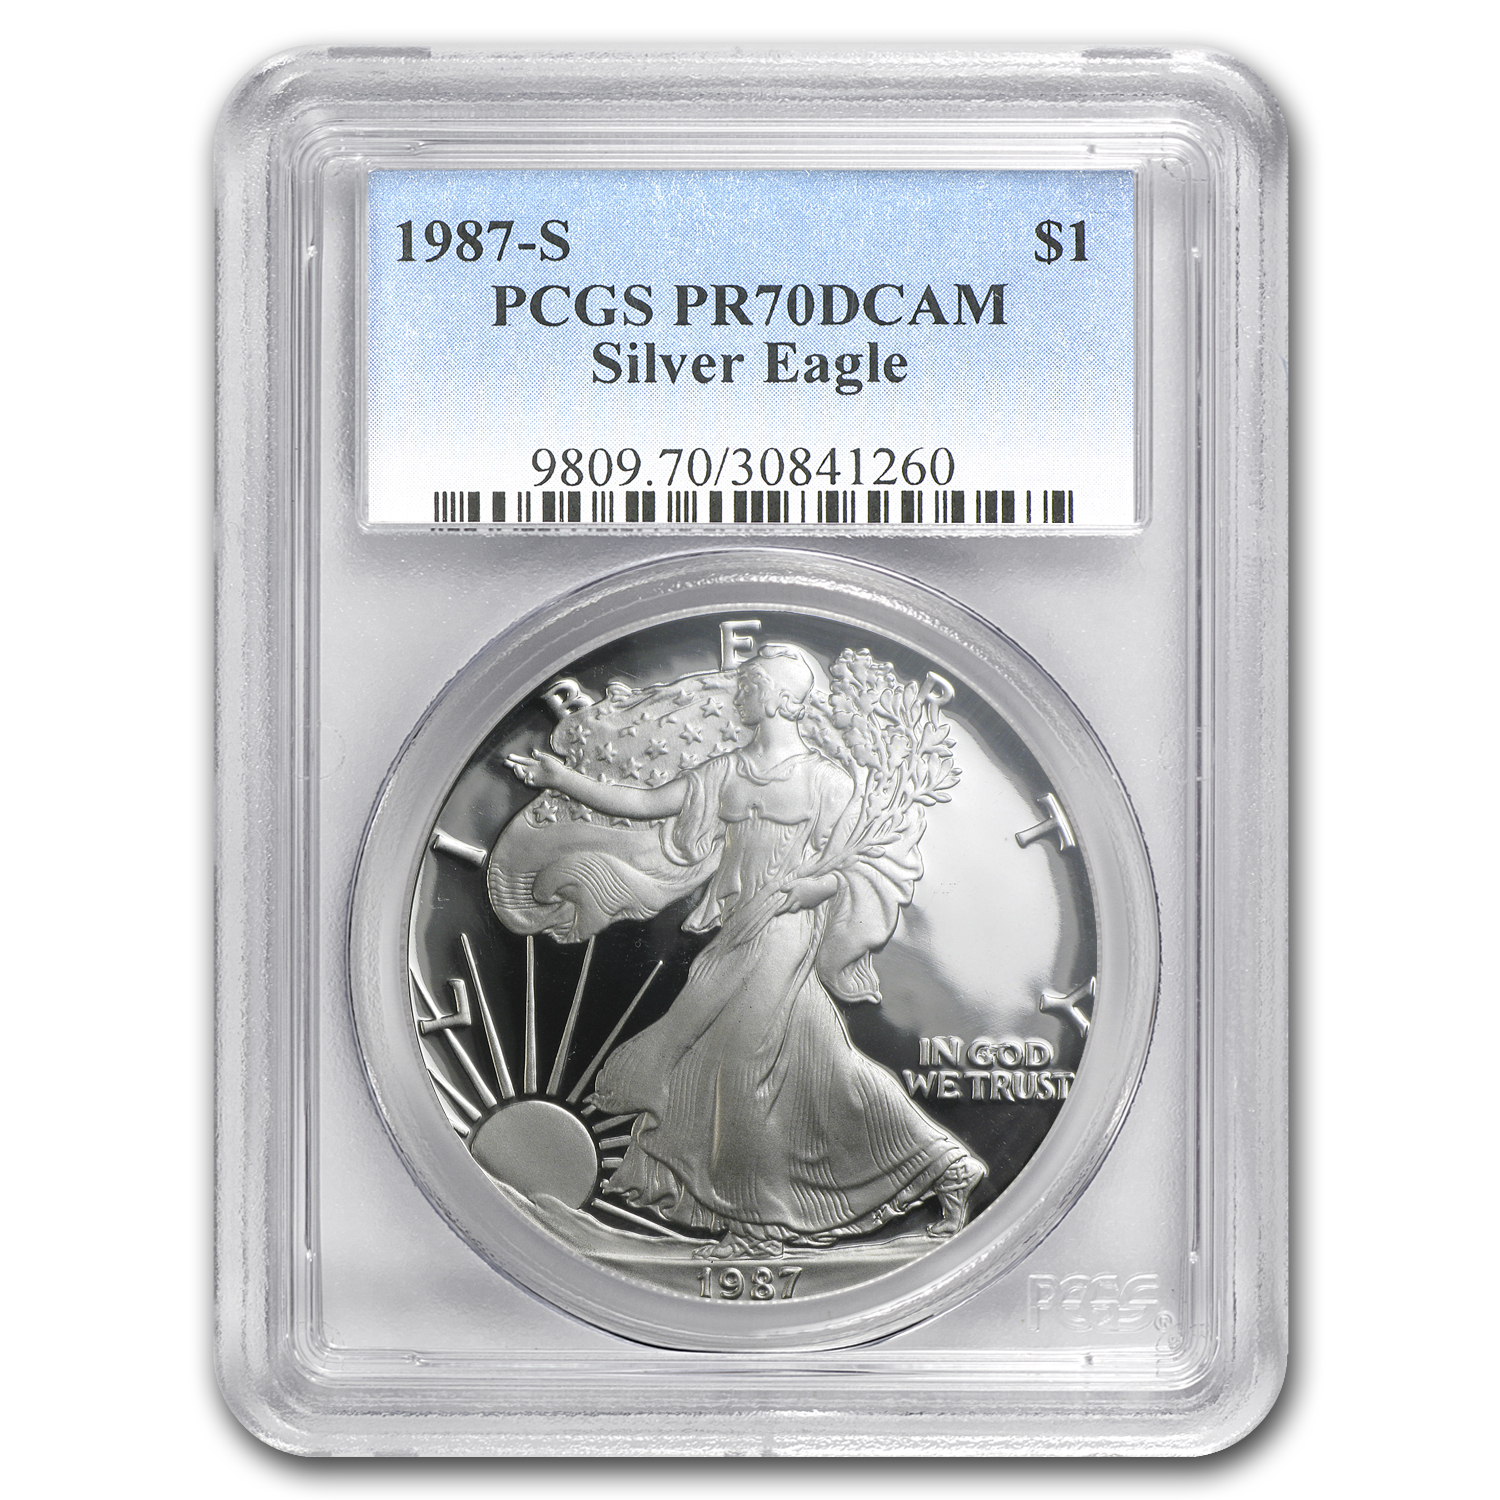 1987-S (Proof) Silver American Eagle PR-70 PCGS Registry Set